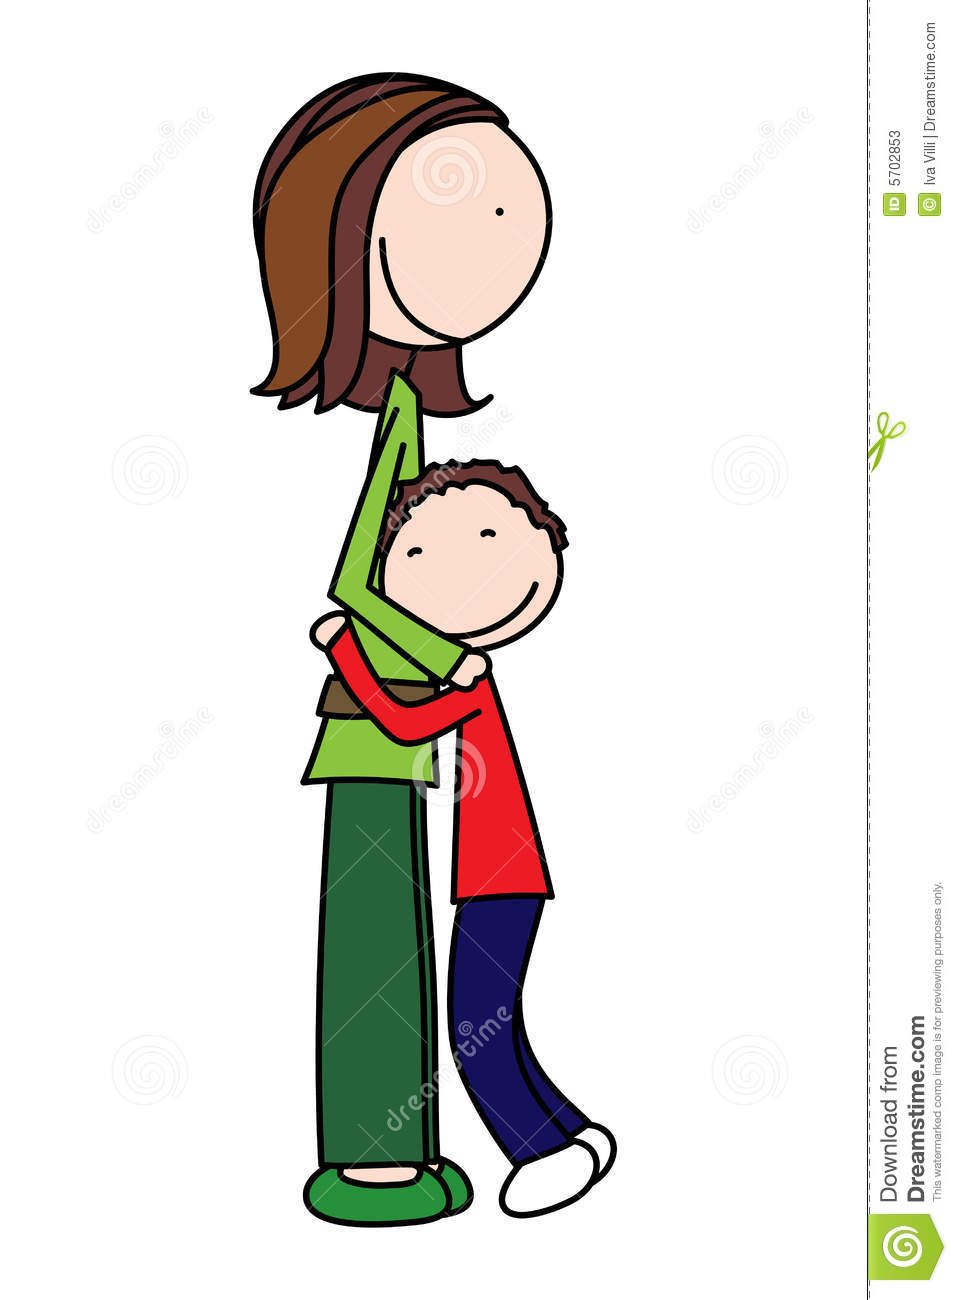 Mother and son clipart 4 » Clipart Station.